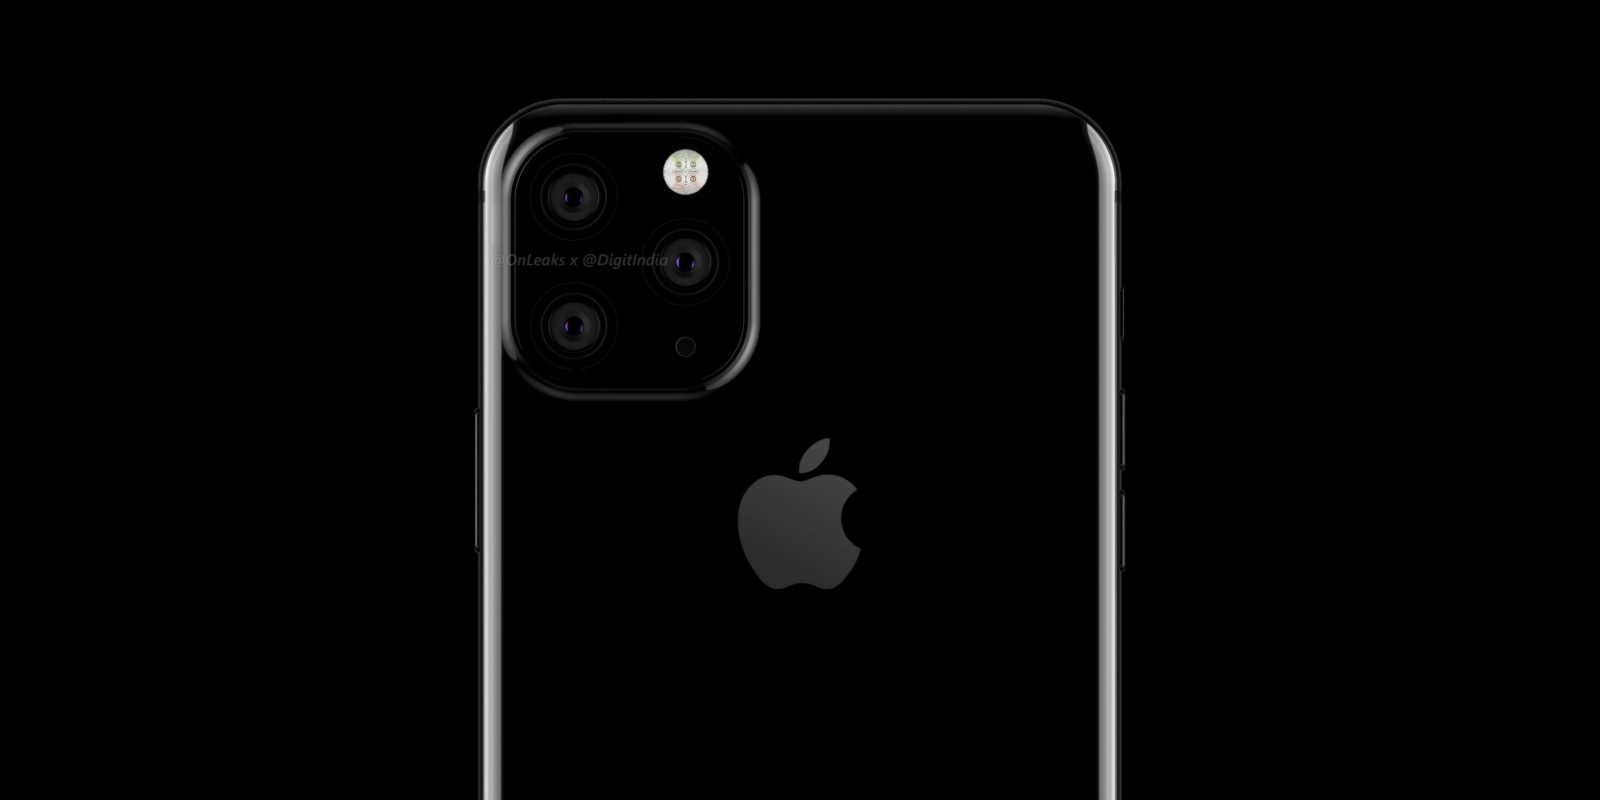 WSJ: High-end 'iPhone 11' will feature triple rear camera, XR successor gets dual lenses